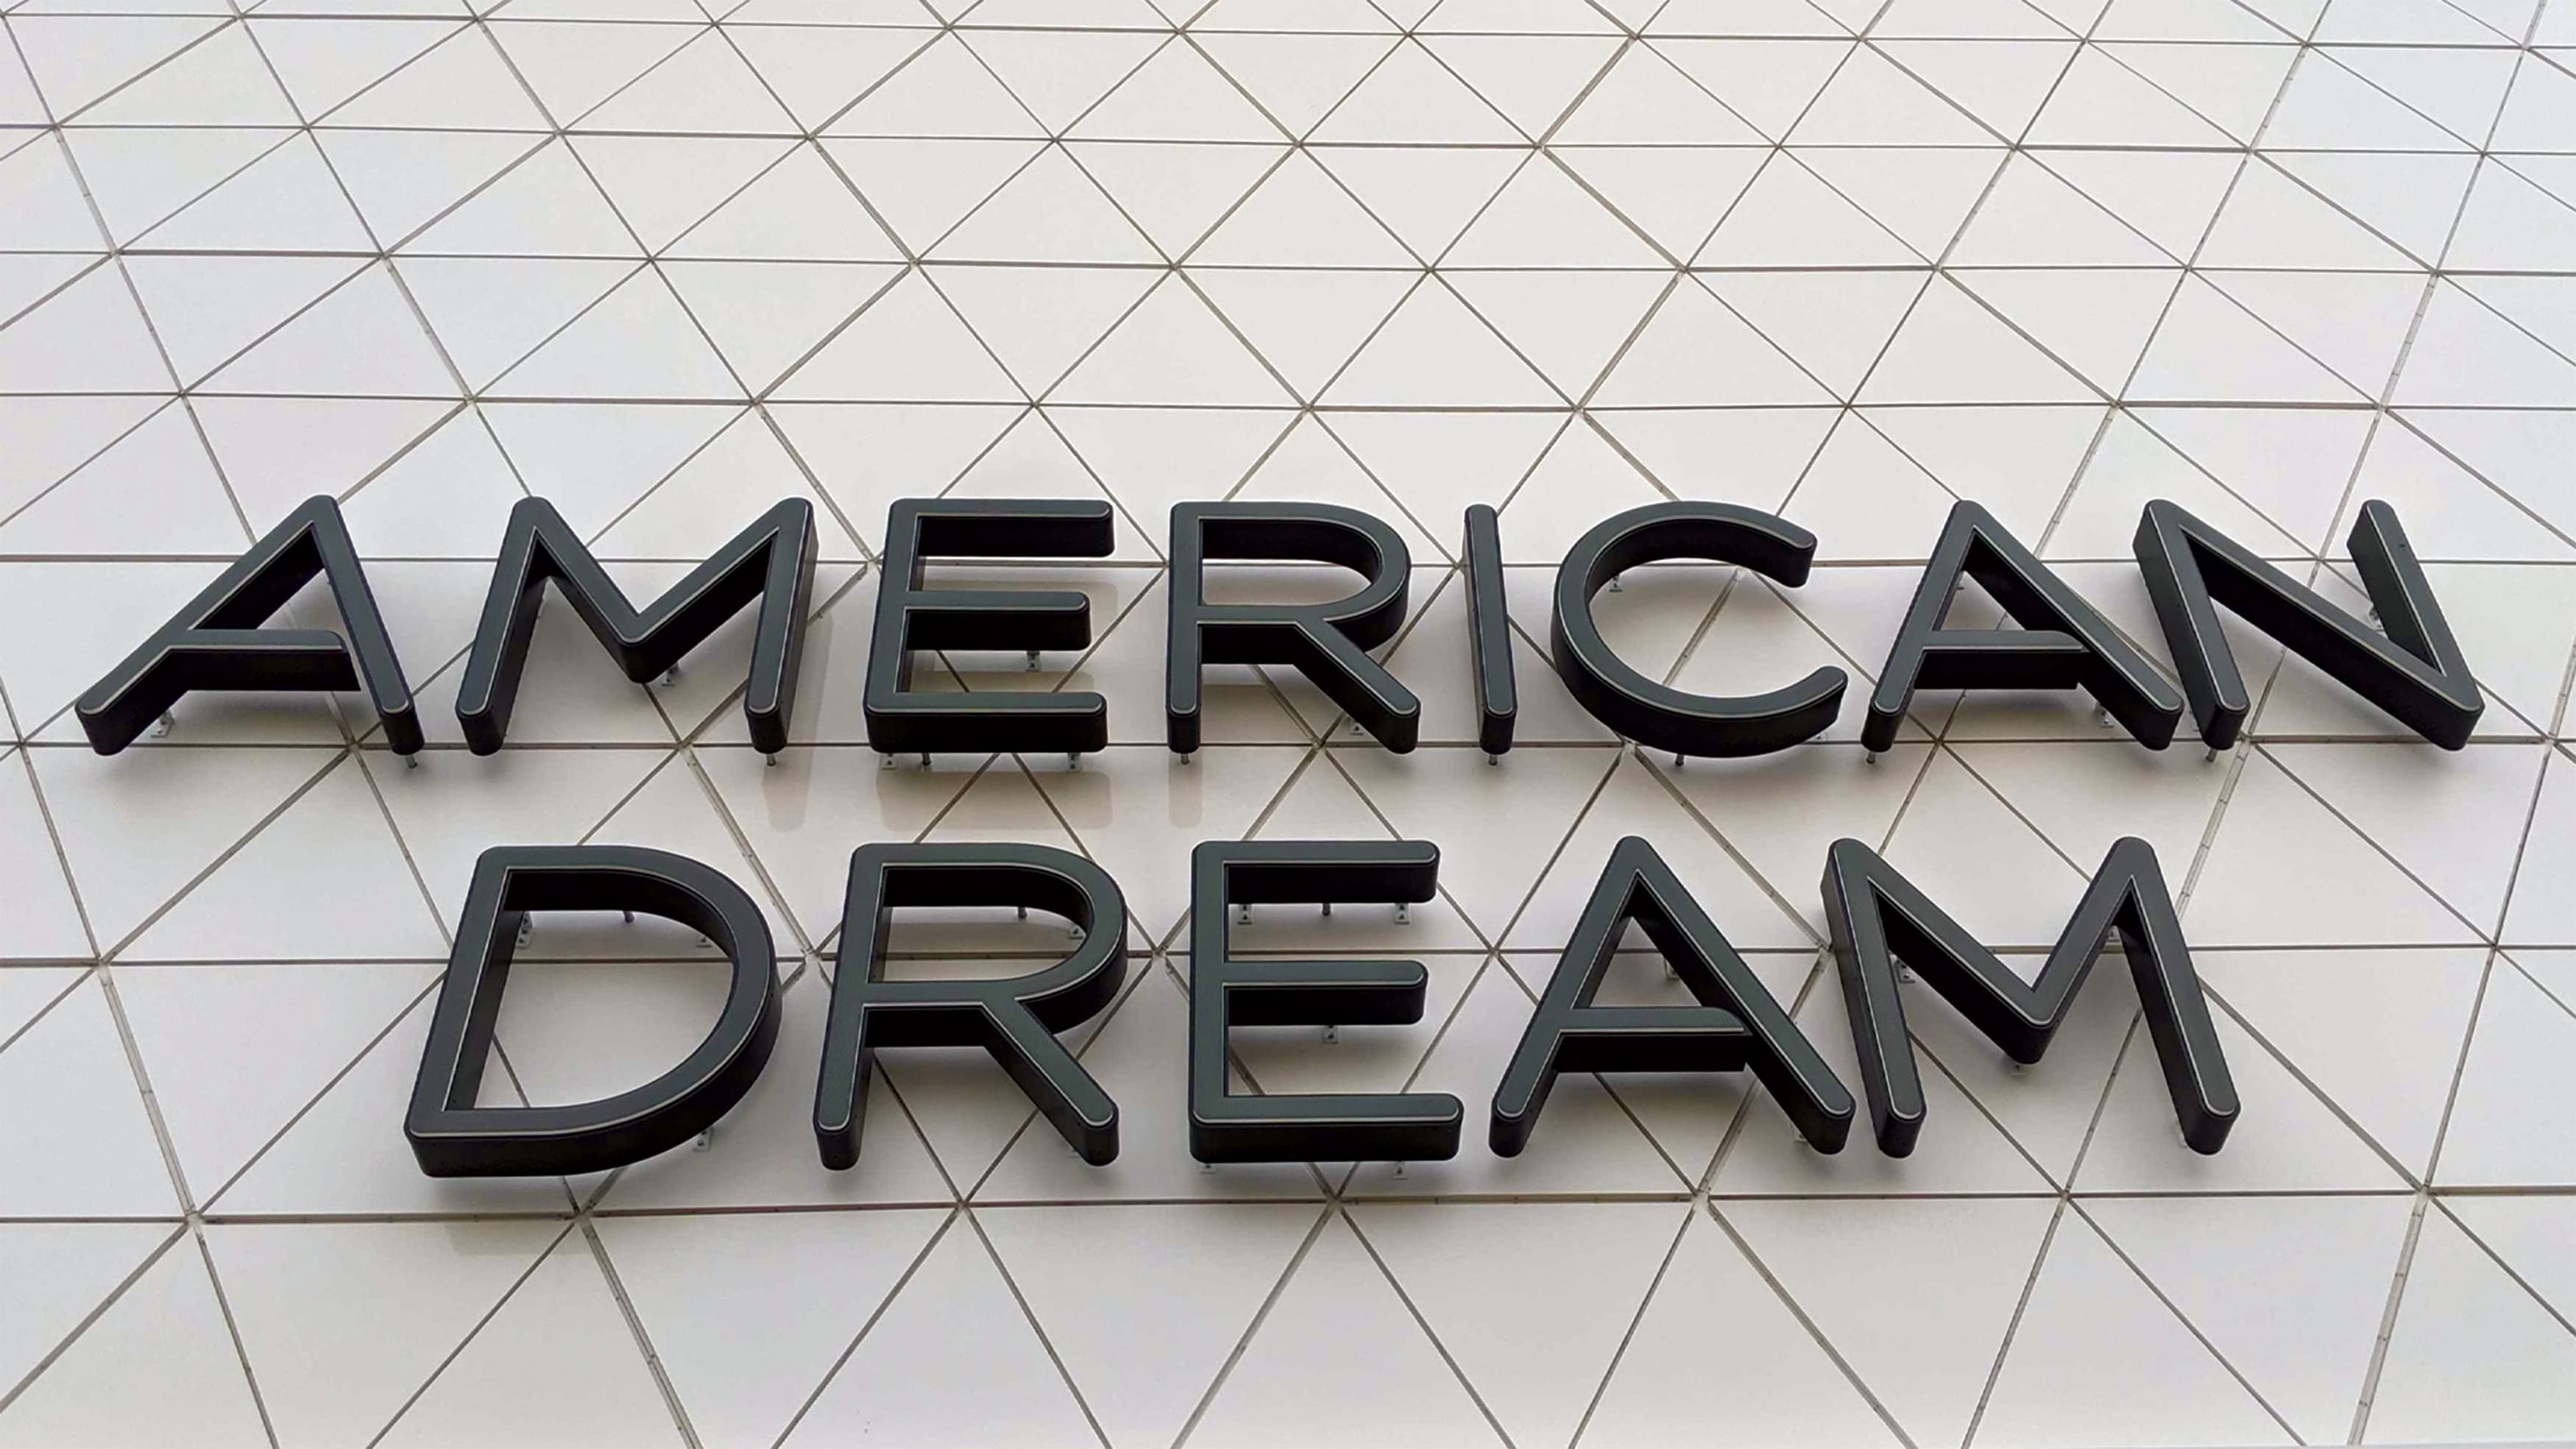 American Dream dimensional identity signage on building facade.